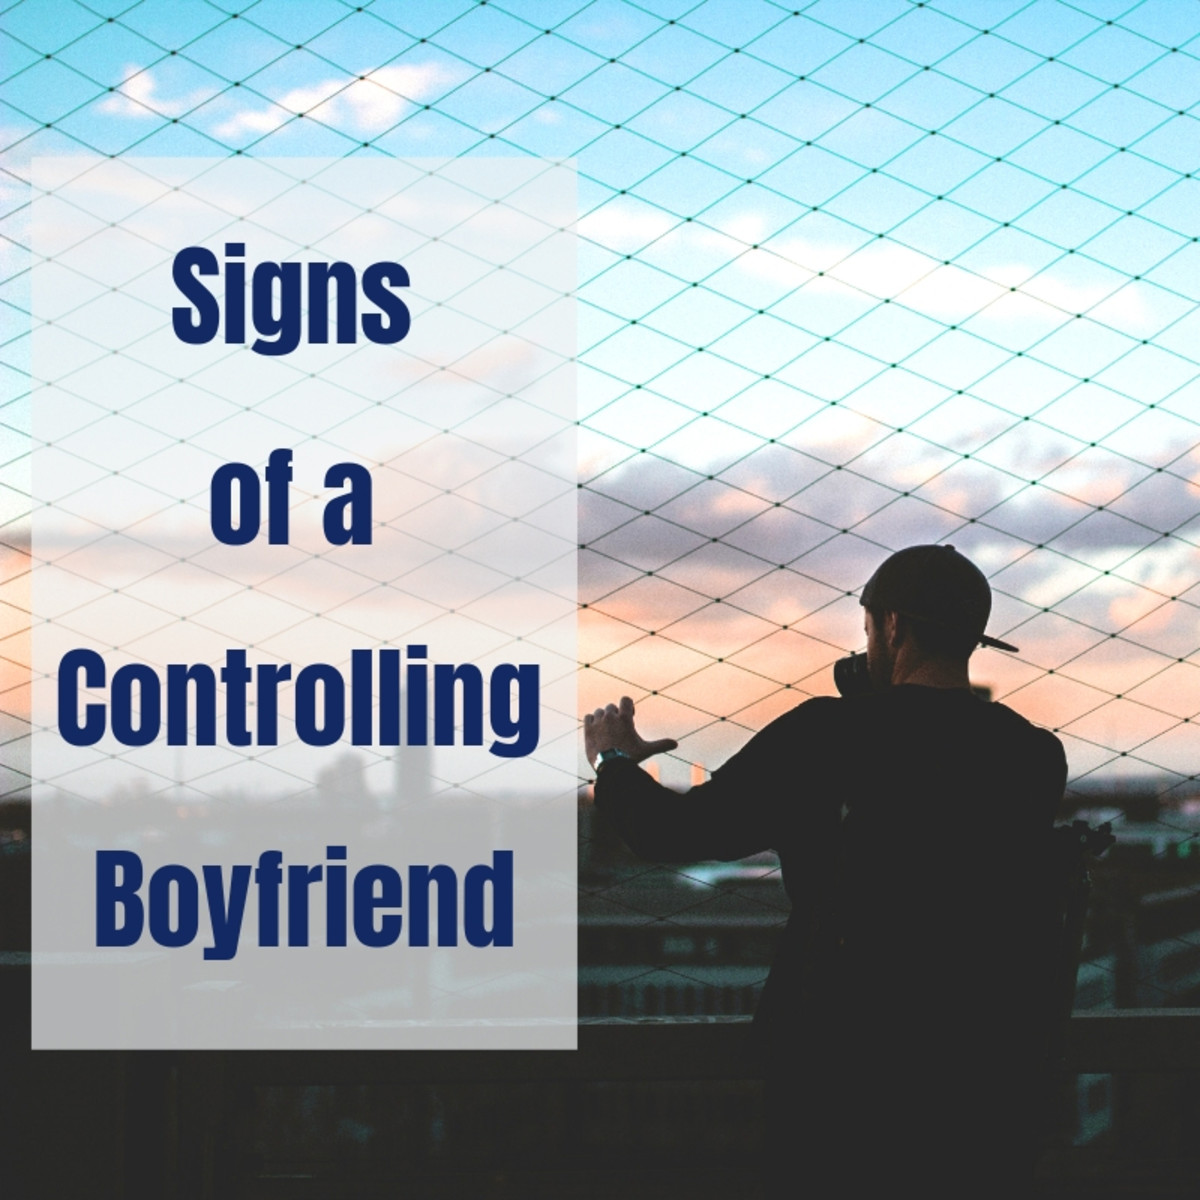 15 Signs of a Controlling Boyfriend & How to Deal With a